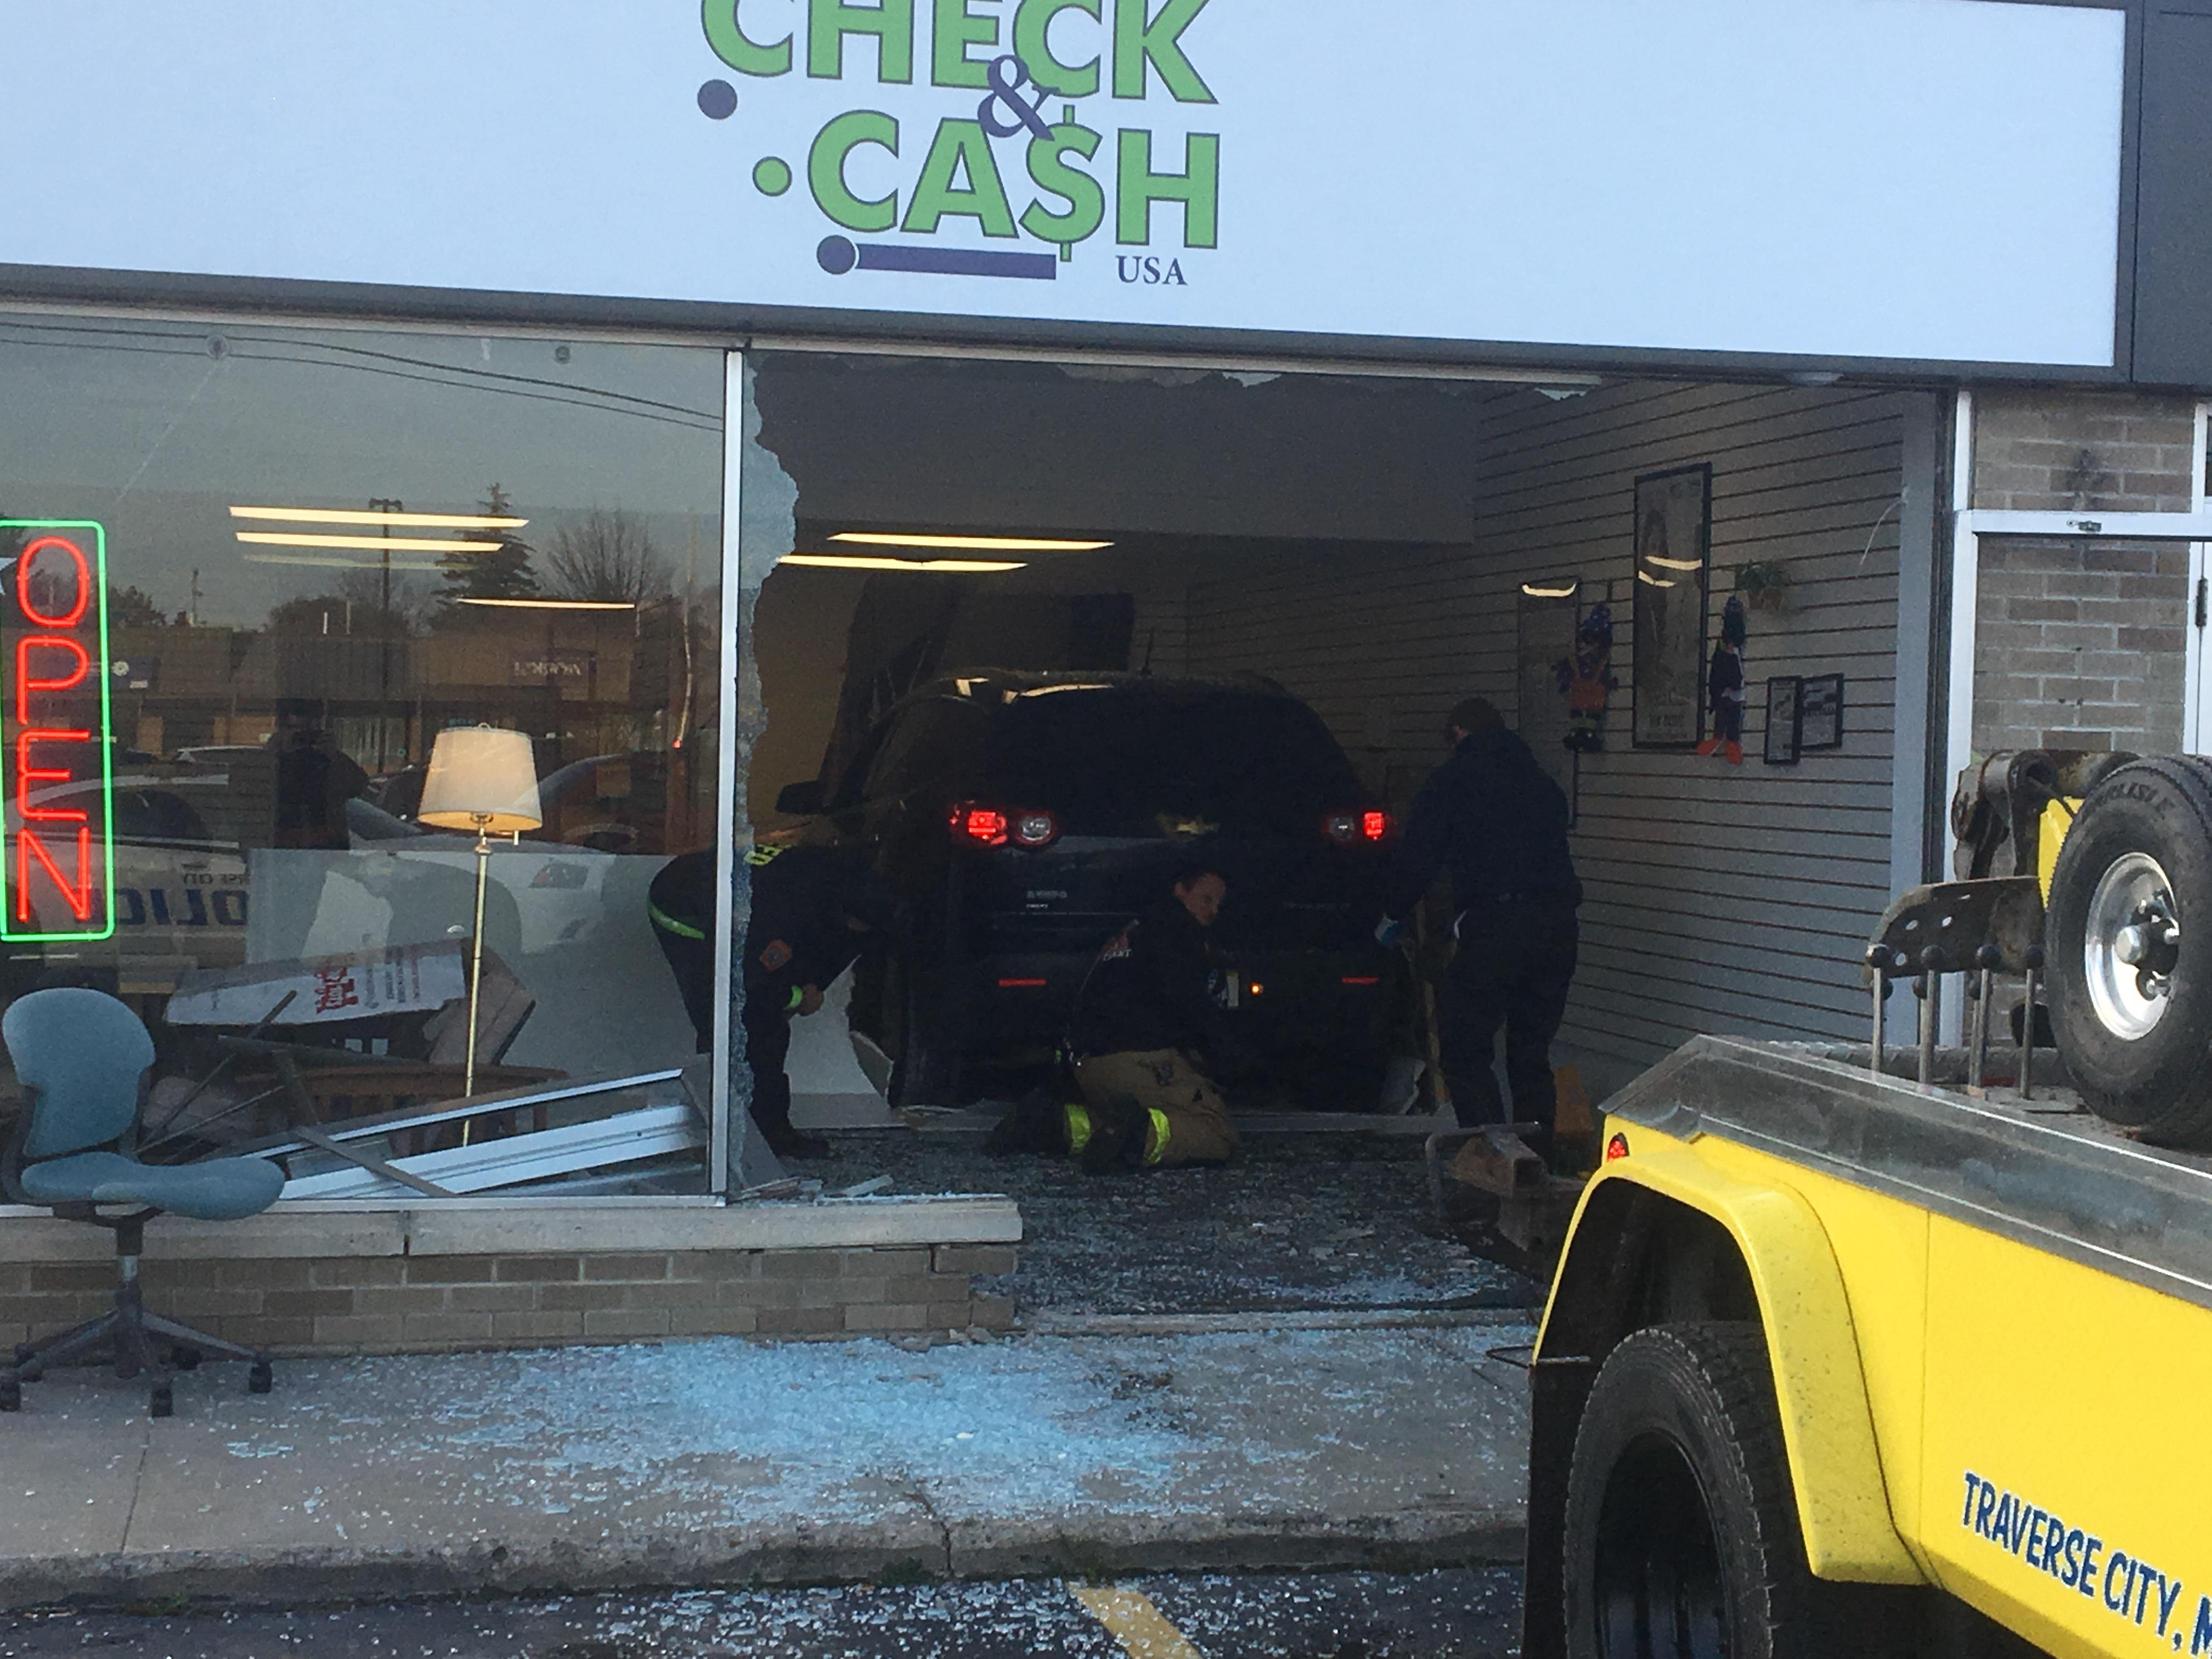 Police are at the scene of a vehicle that crashed into a Traverse City business. It happened around 3:30 p.m. Monday at the Check & Cash on South Garfield and Baldwin.